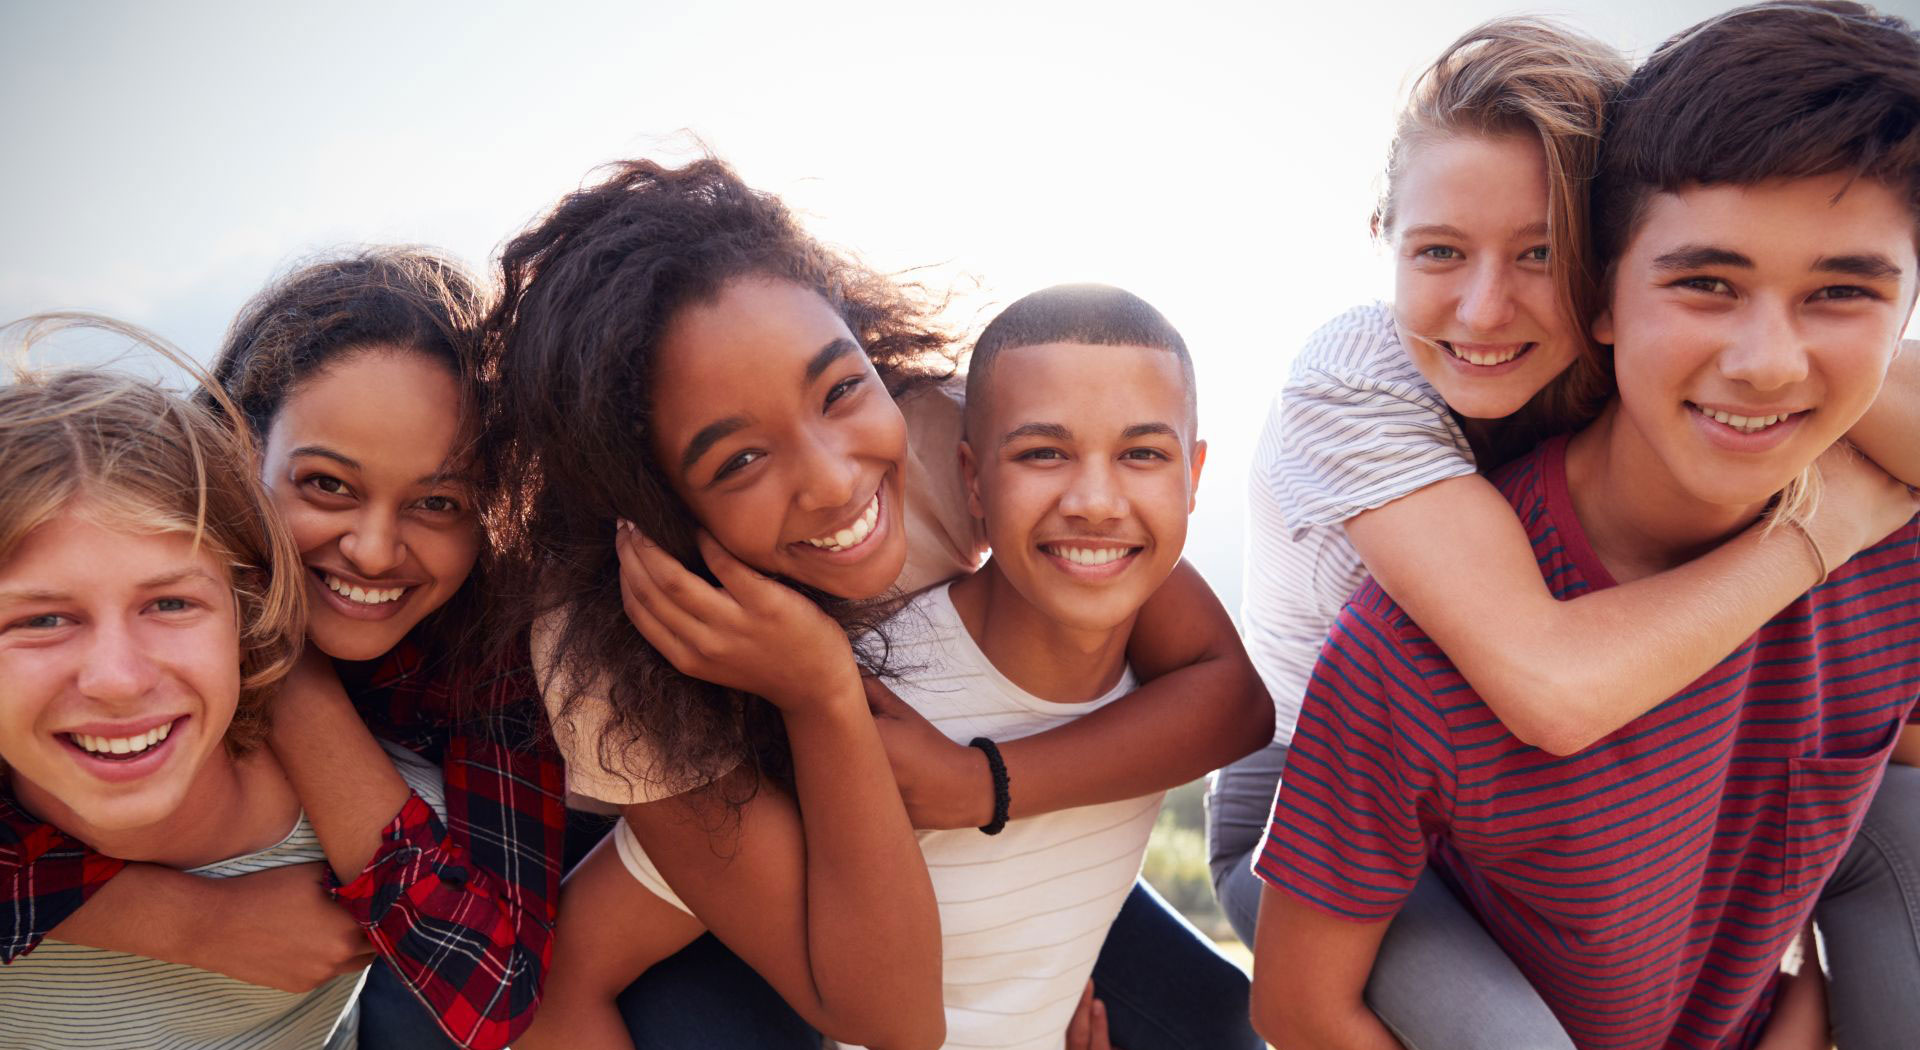 FLUORIDE USE IN ADOLESCENTS